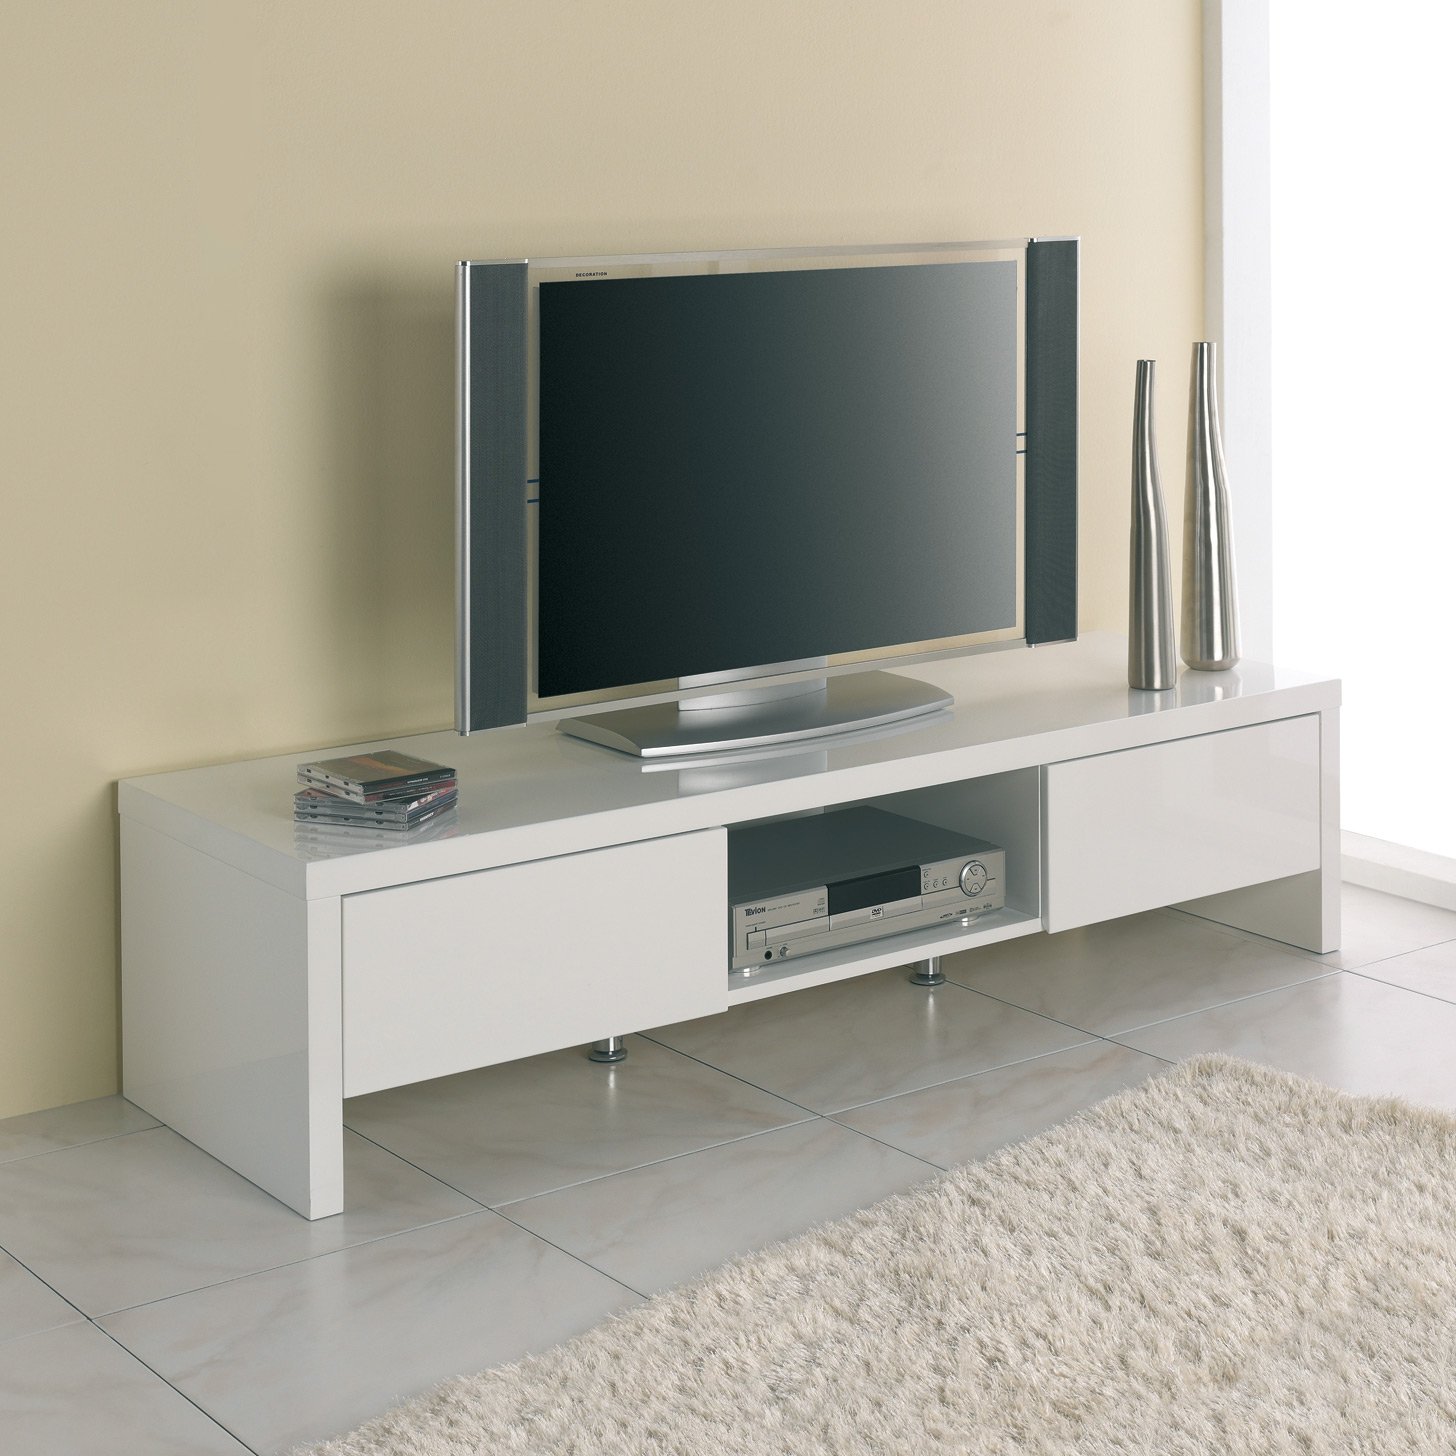 Meuble tv hauteur 100 cm mobilier design d coration d for Meuble tv 100 cm design